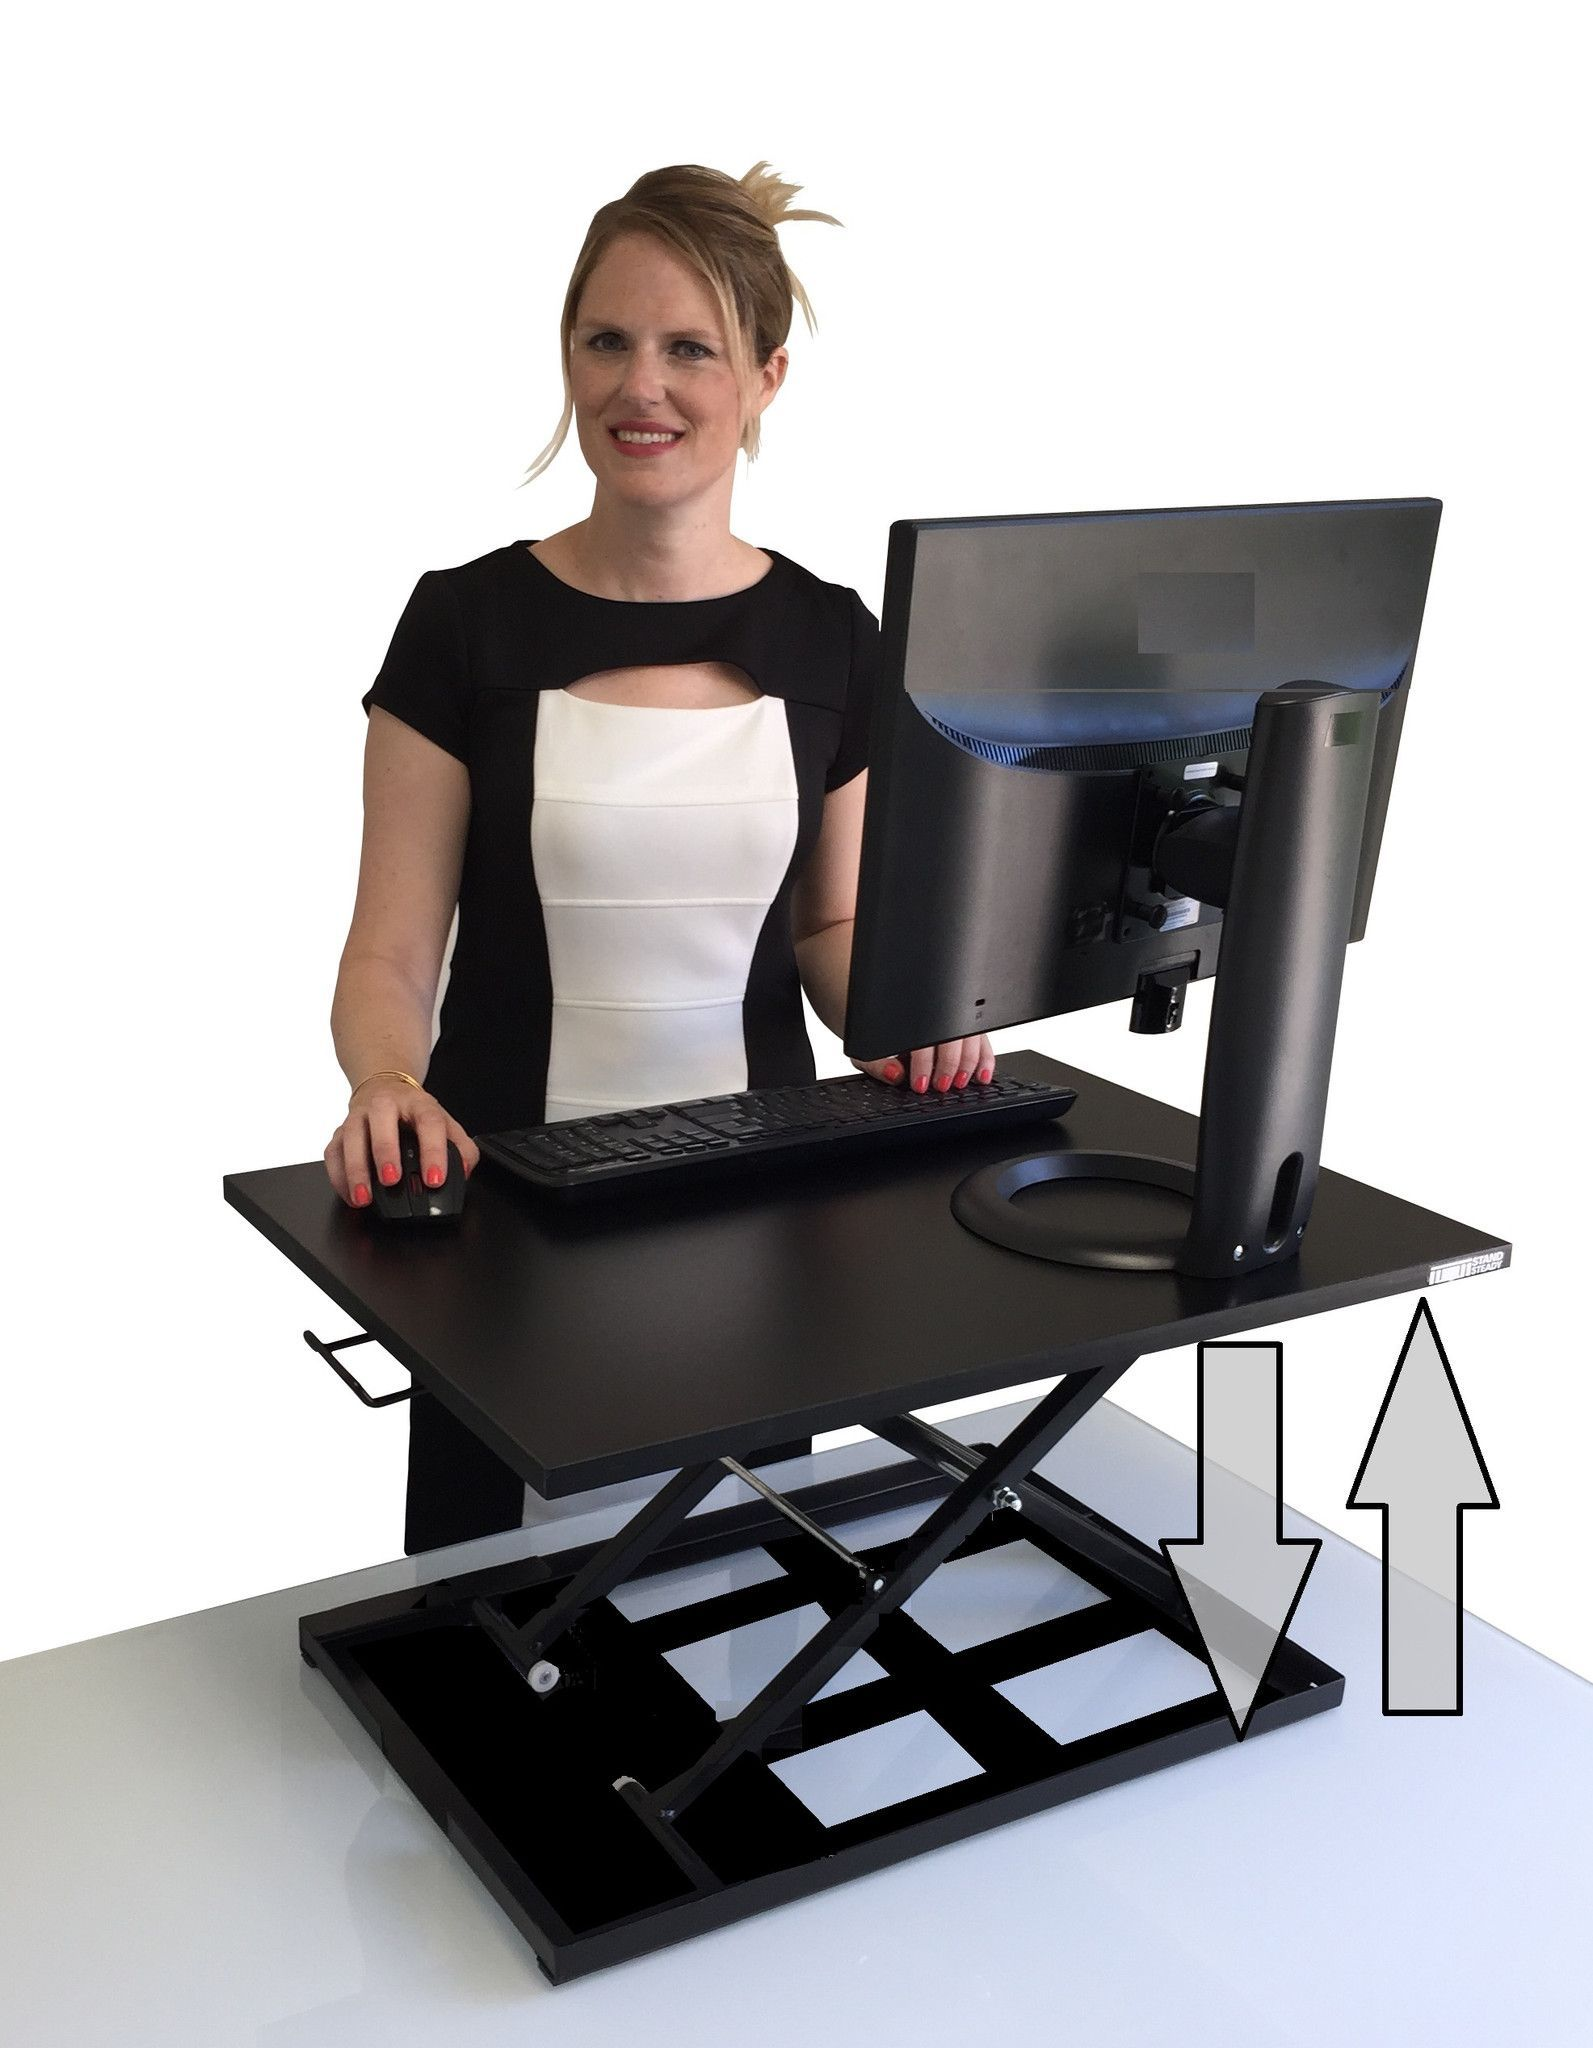 X Elite Pro Standing Desk Converter Adjustable Standing Desk Sit Stand Desk Adjustable Standing Desk Conversion